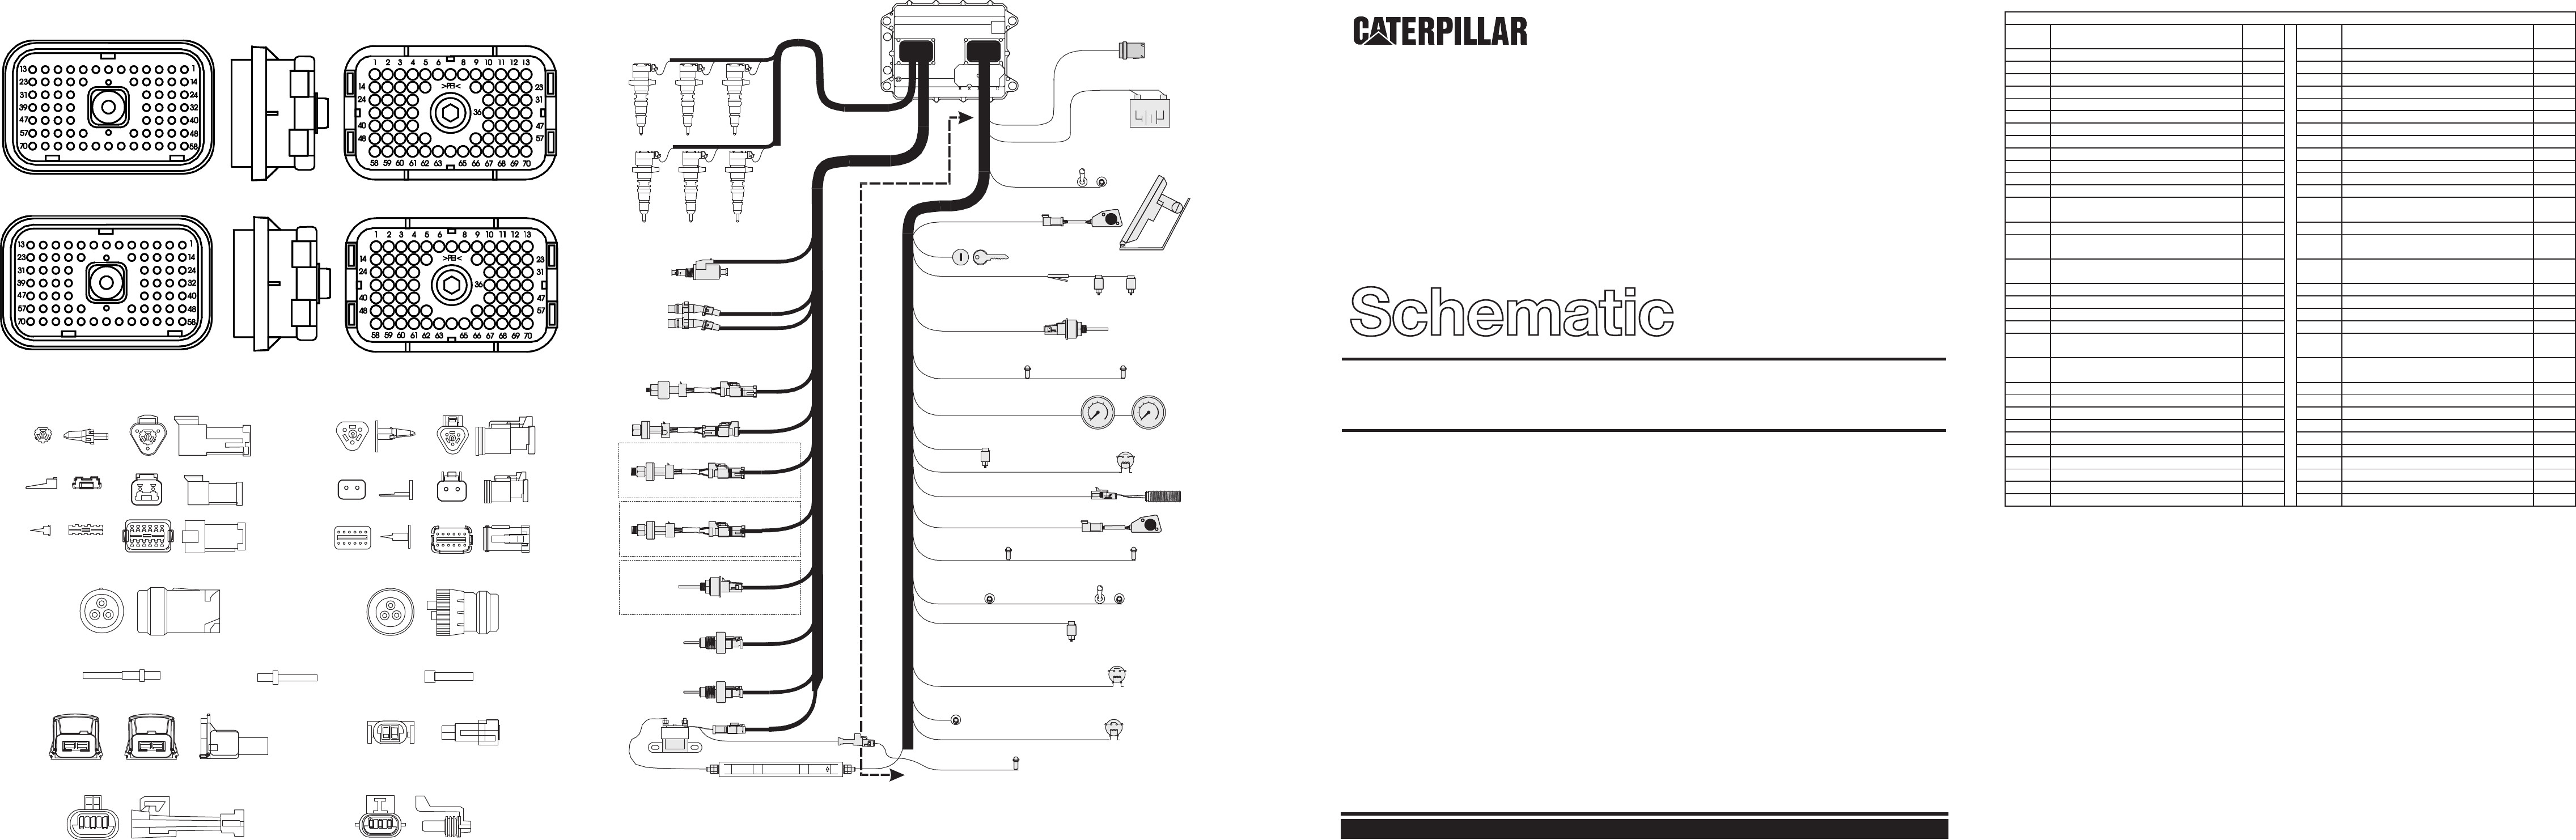 Cat C7 Ecm Wiring Diagram Download Sample 3126 Free Bg1 Intake Heater 3 2